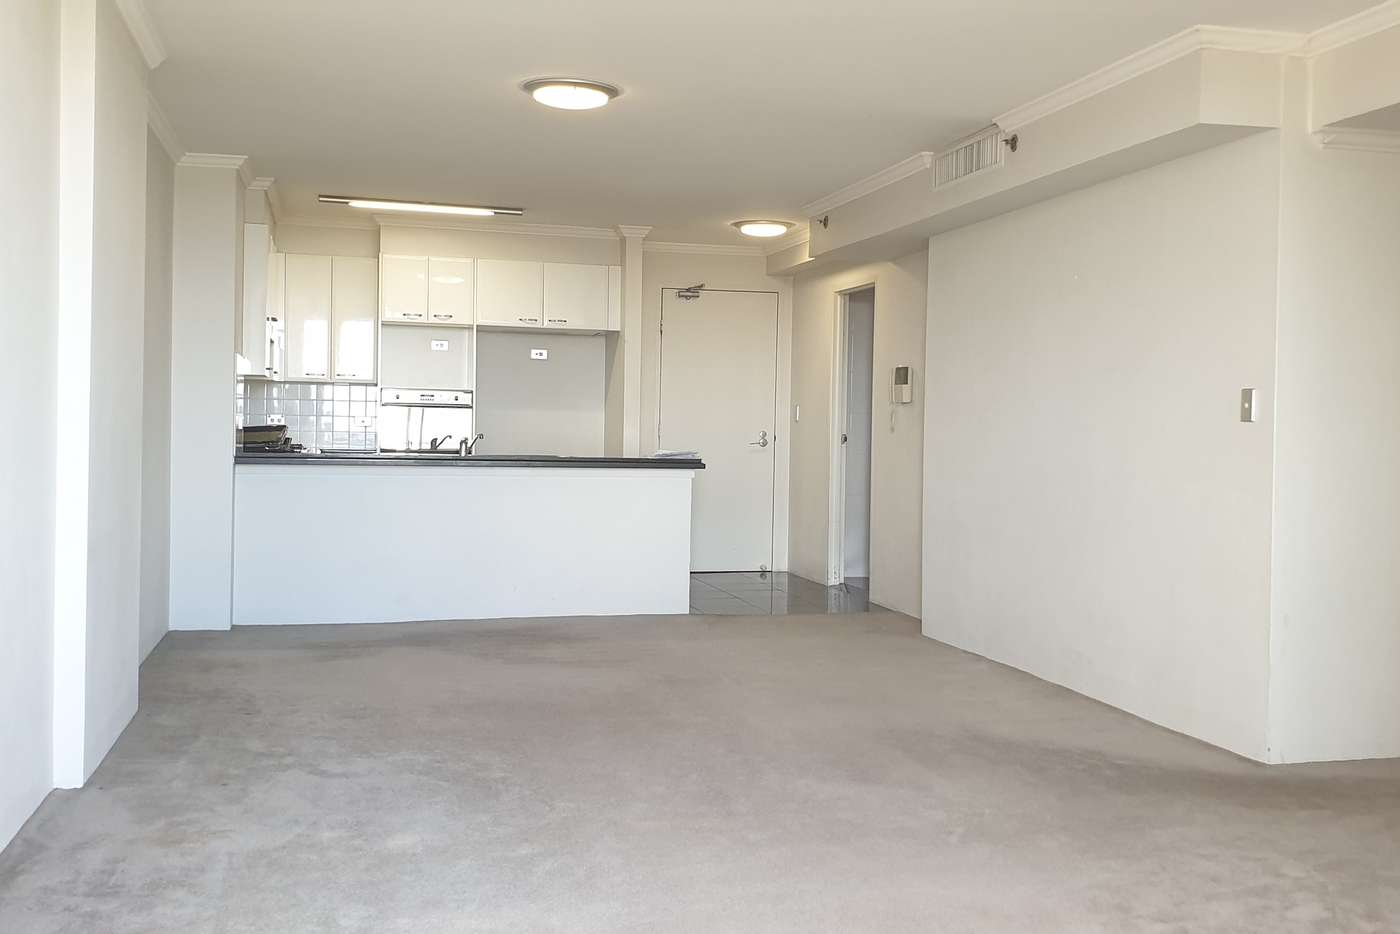 Main view of Homely apartment listing, 96/14 Brown Street, Chatswood NSW 2067